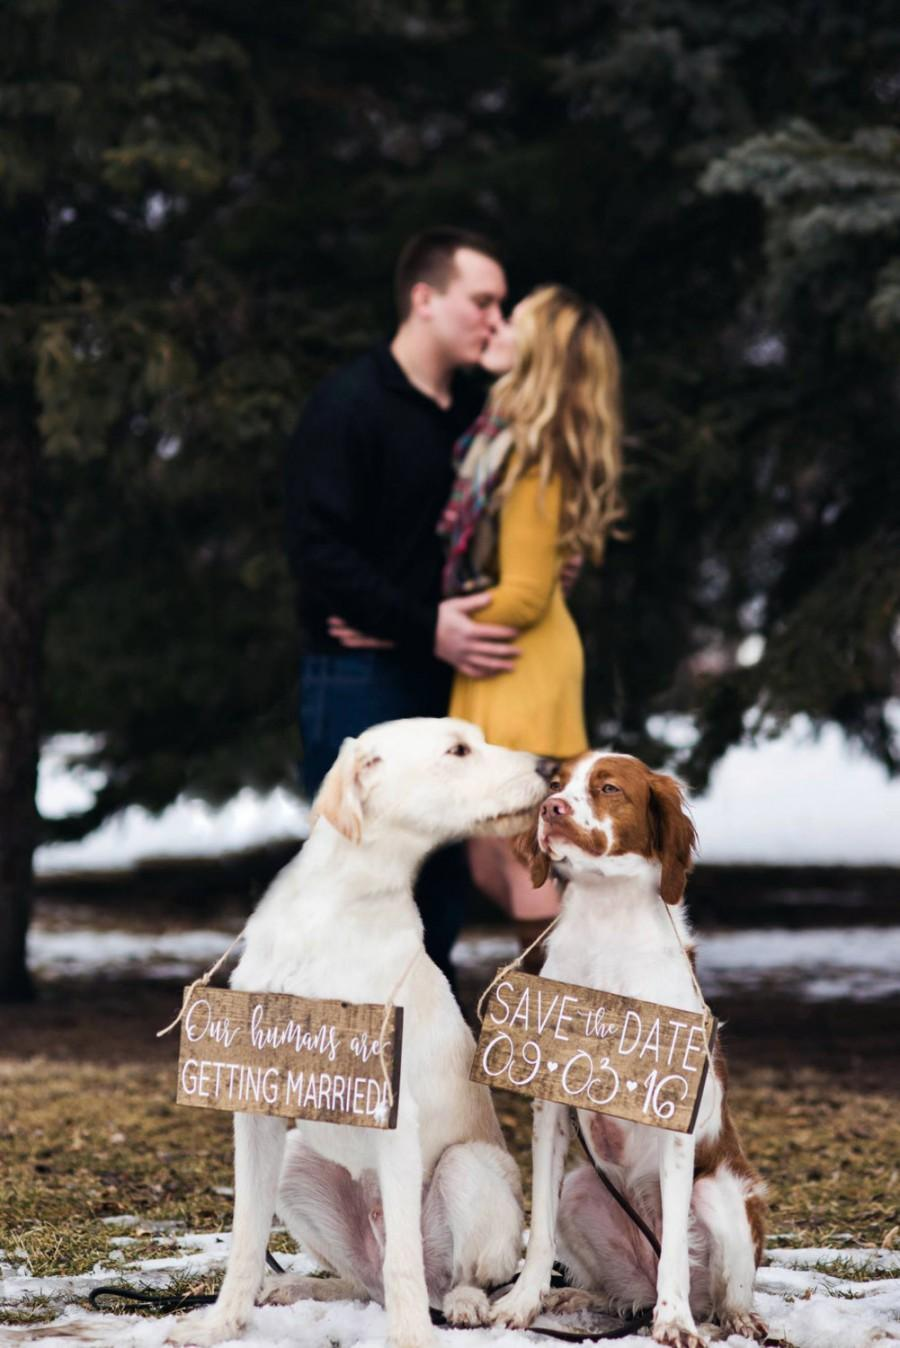 Mariage - Pet SaVe THe DaTe SiGn - Dog PHoTo PRoP SiGn - Calligraphy Lettering - Pet Wedding SiGnS - RuSTic WeDDing SiGn - Rustic Dark Stain 10 x 5